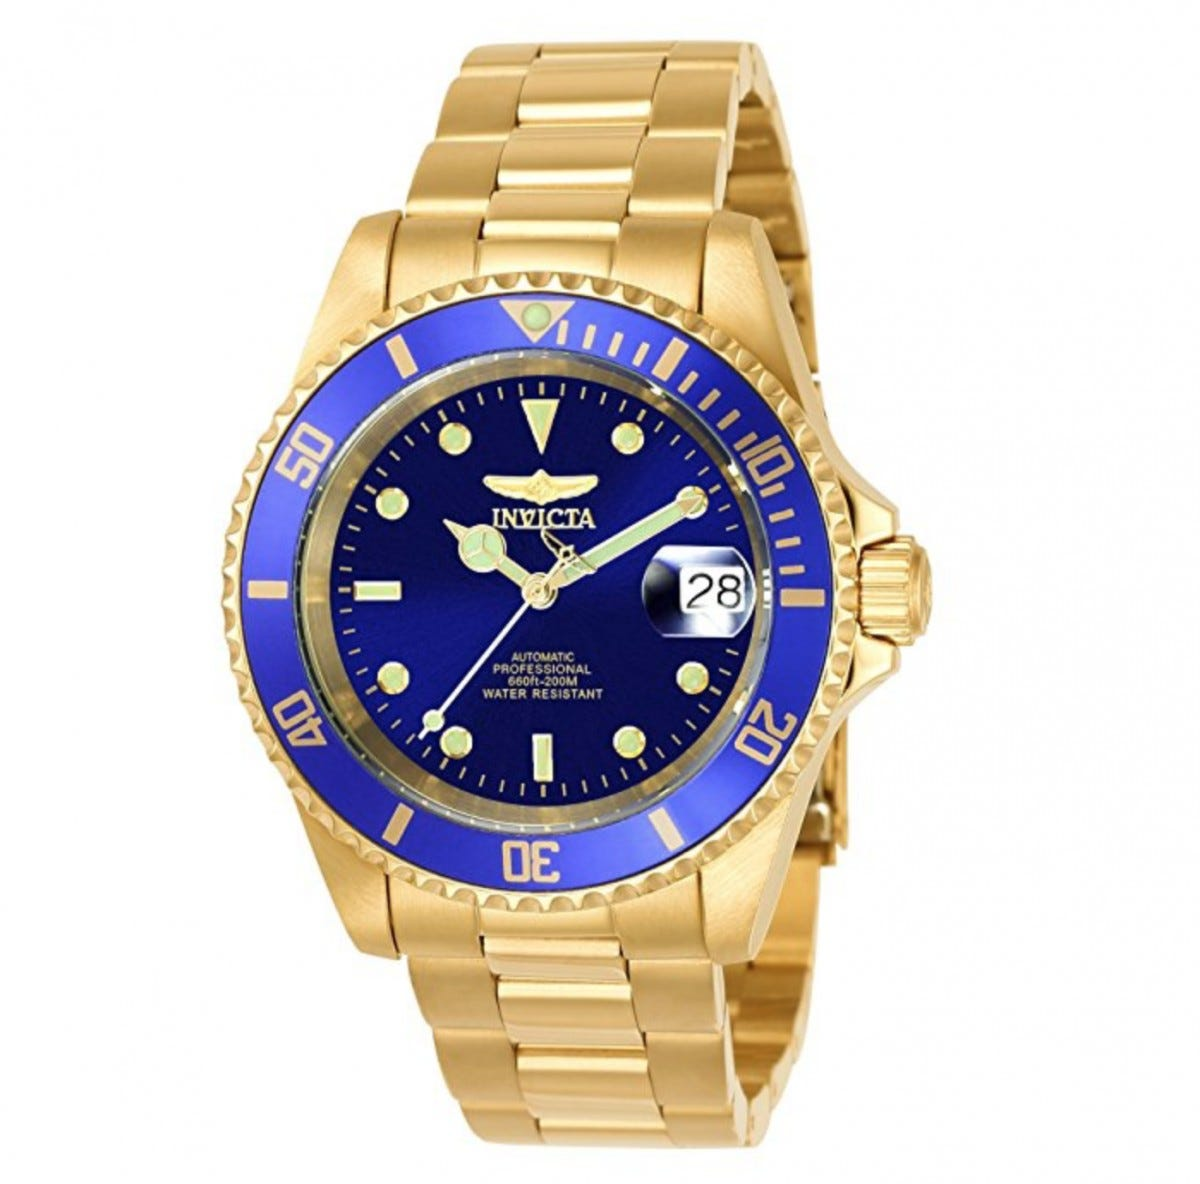 The Best Affordable* Automatic Gold Watches - Review Geek